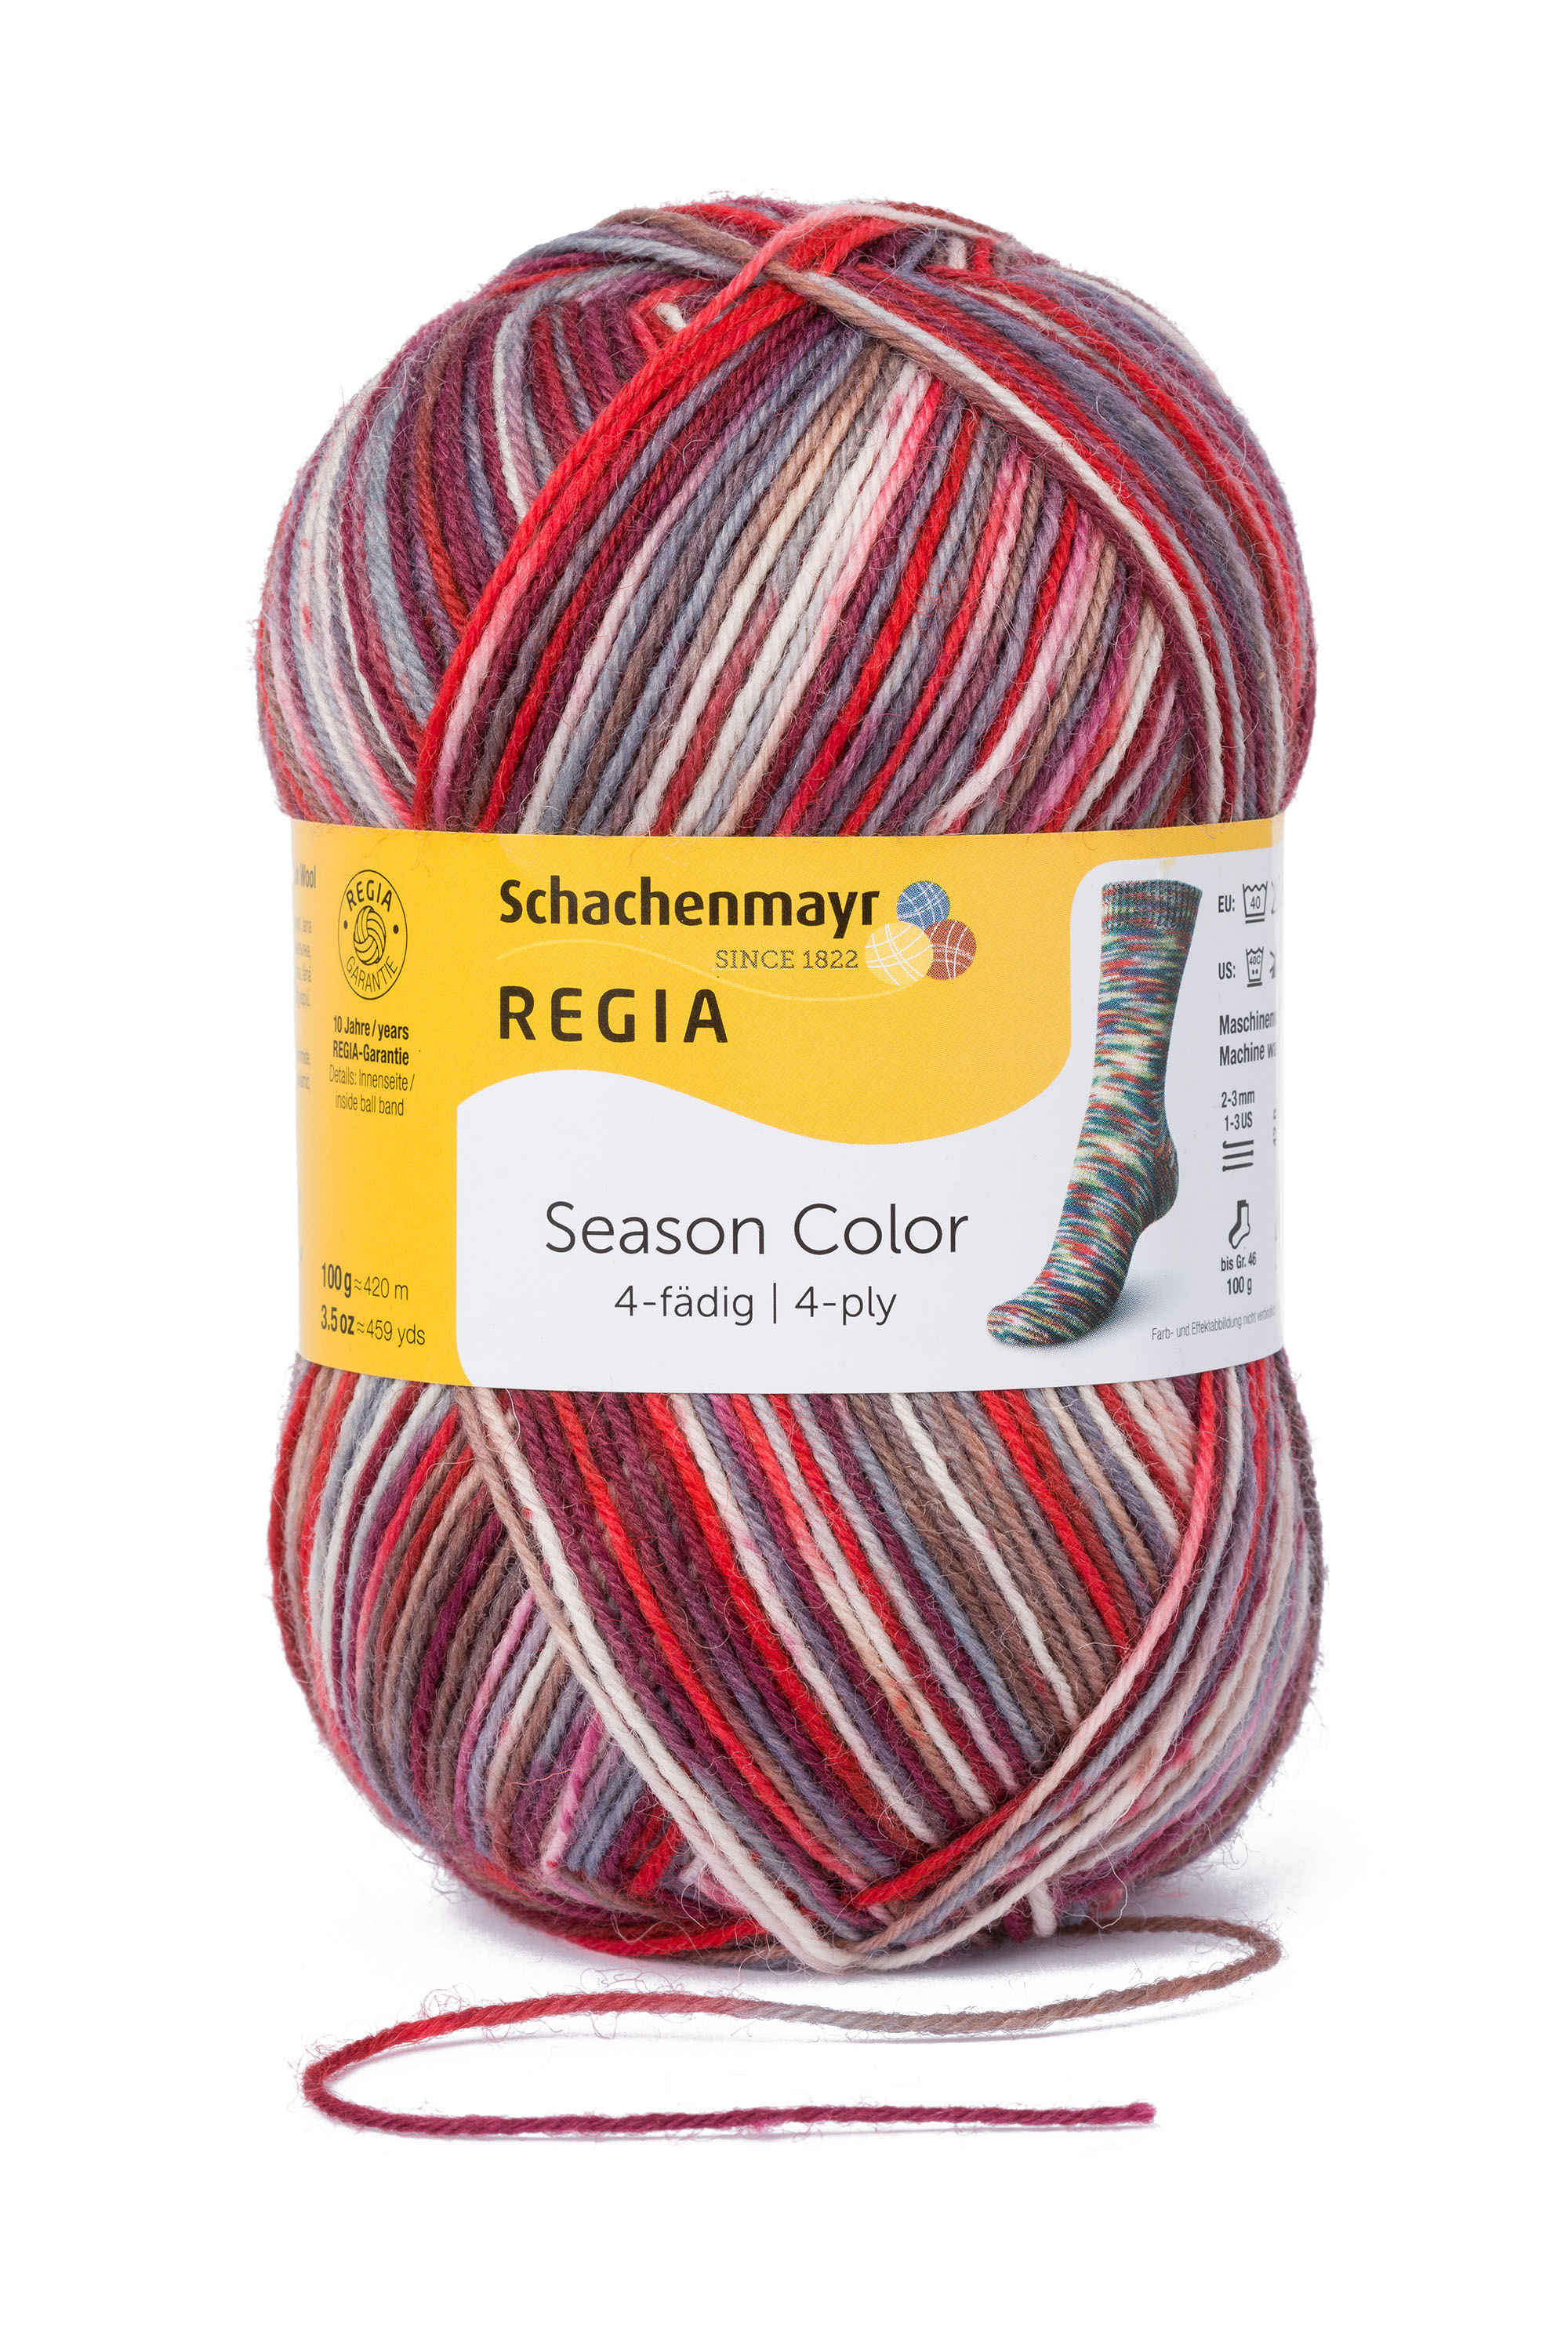 Christmas Colored Sock Yarn With Schachenmayr REGIA Season Color 4 Ply Knitting Crochet